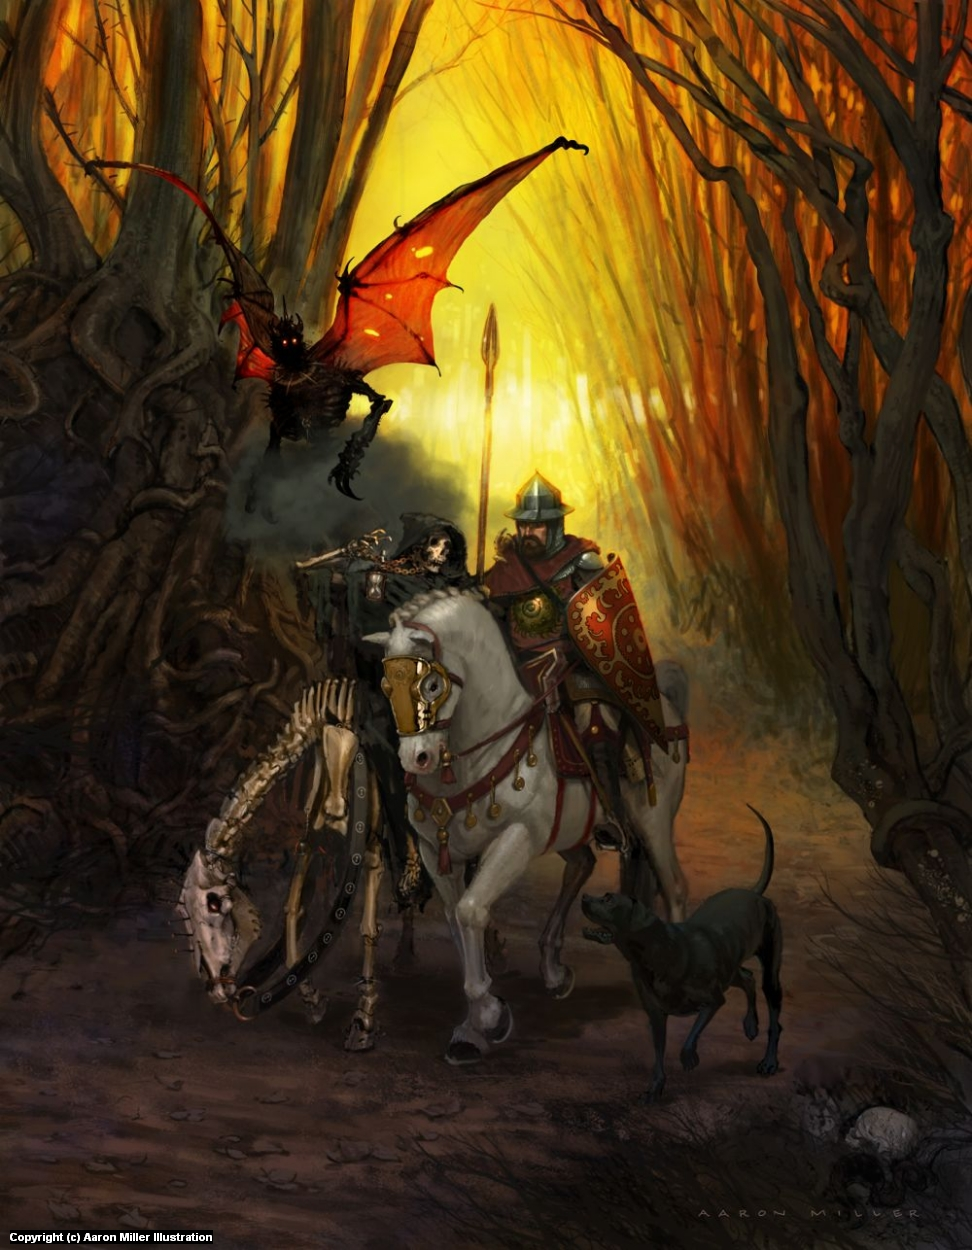 Knight, Death, and the Devil Artwork by Aaron Miller